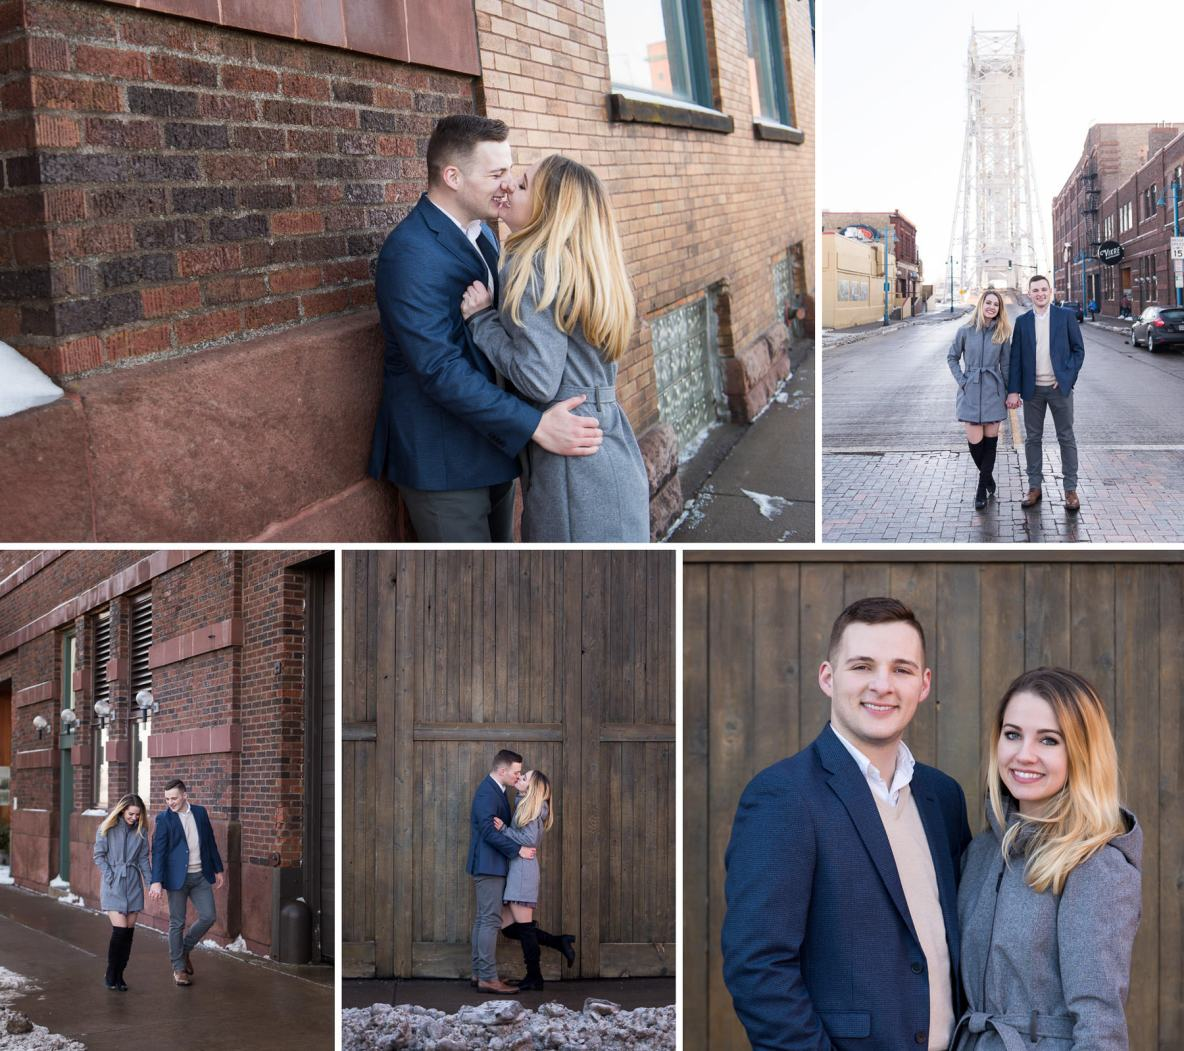 Newly engaged couple in Duluth, MN with bridge in background.